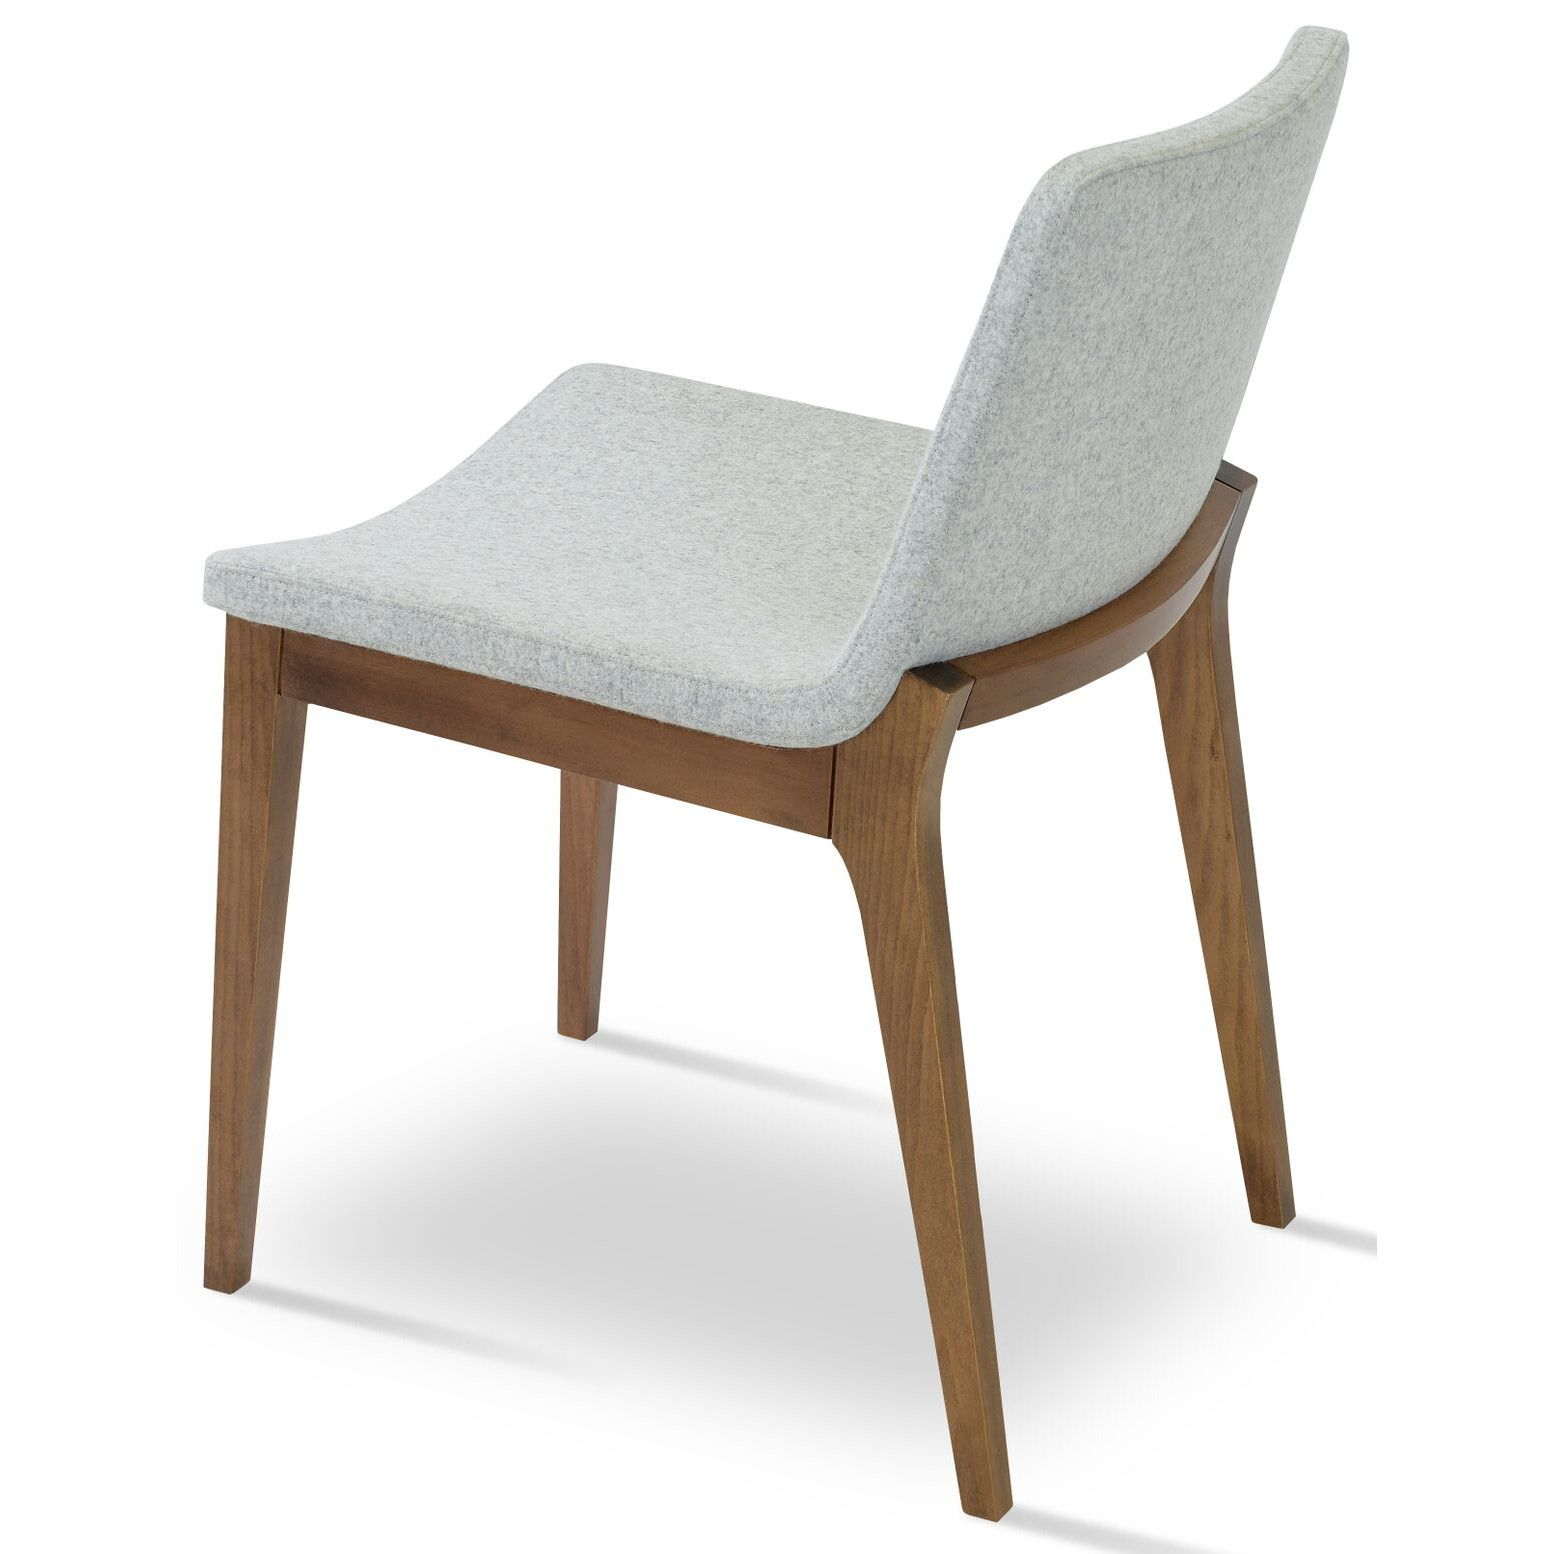 Nevada Wood Is A Modern Dining Chair With A Comfortable